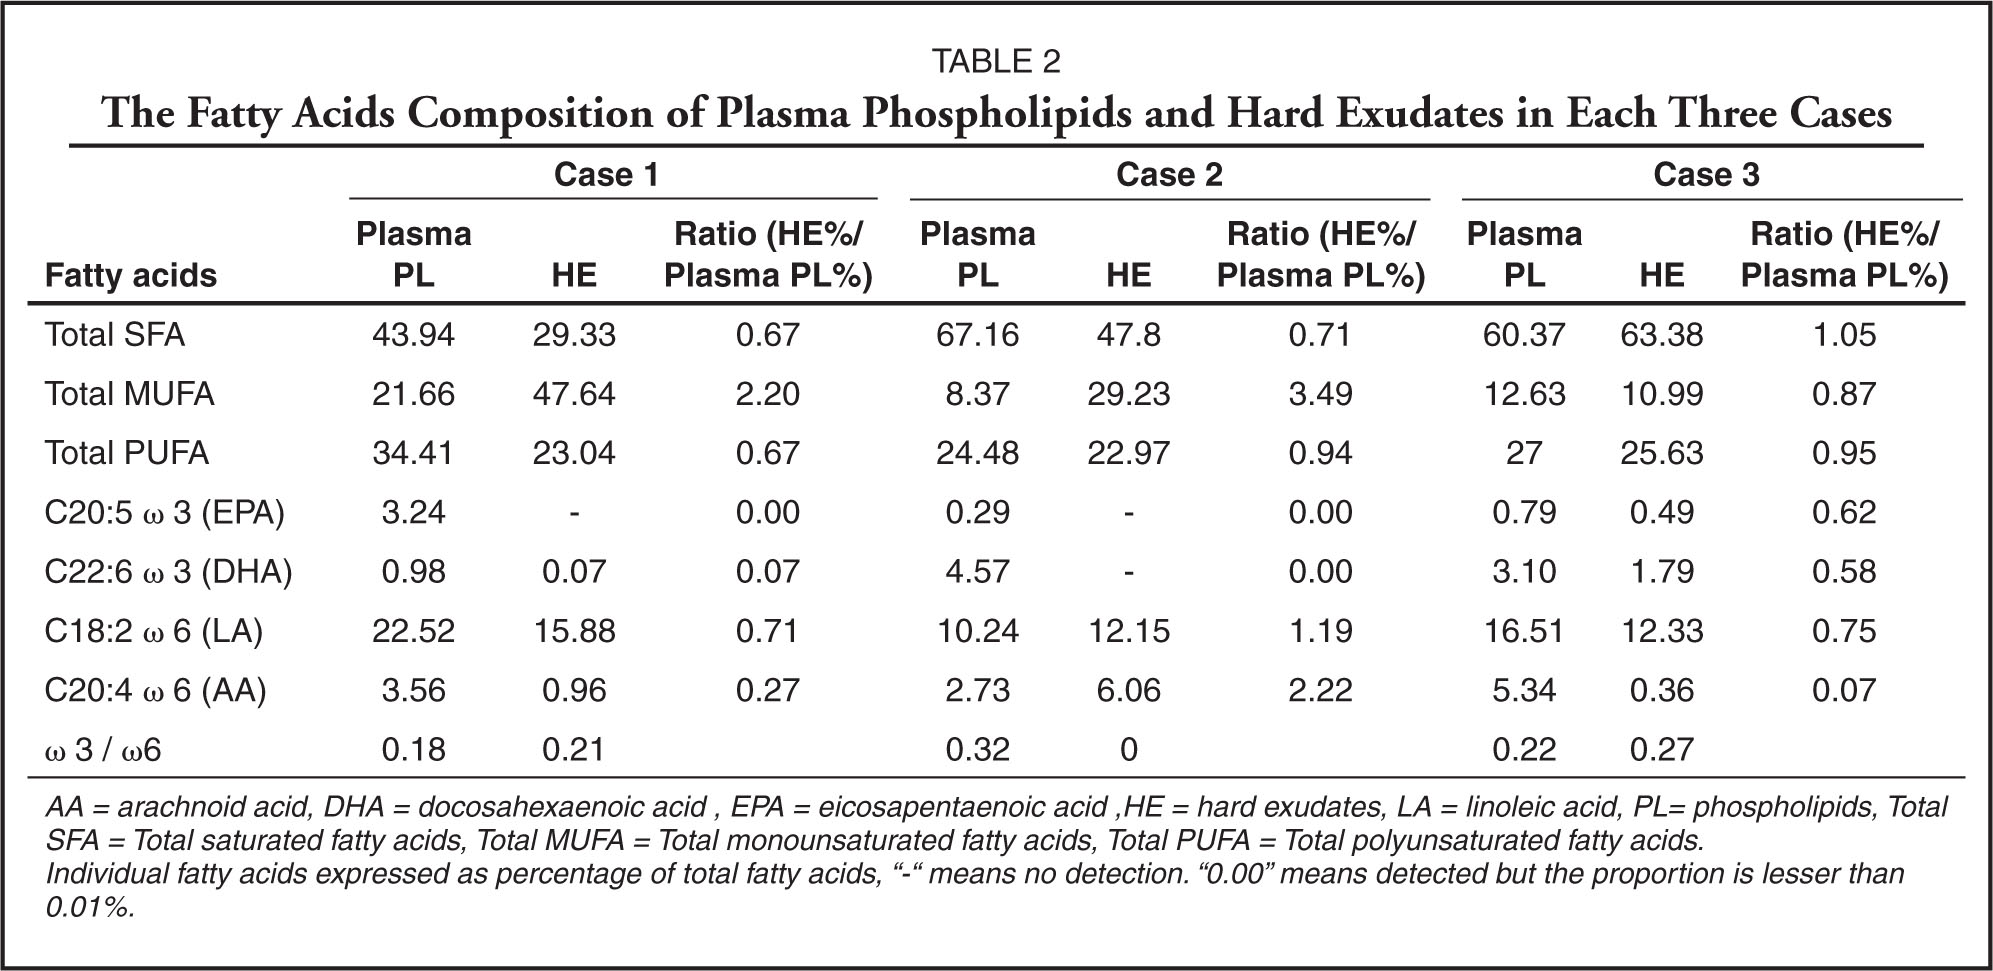 The Fatty Acids Composition of Plasma Phospholipids and Hard Exudates in Each Three Cases